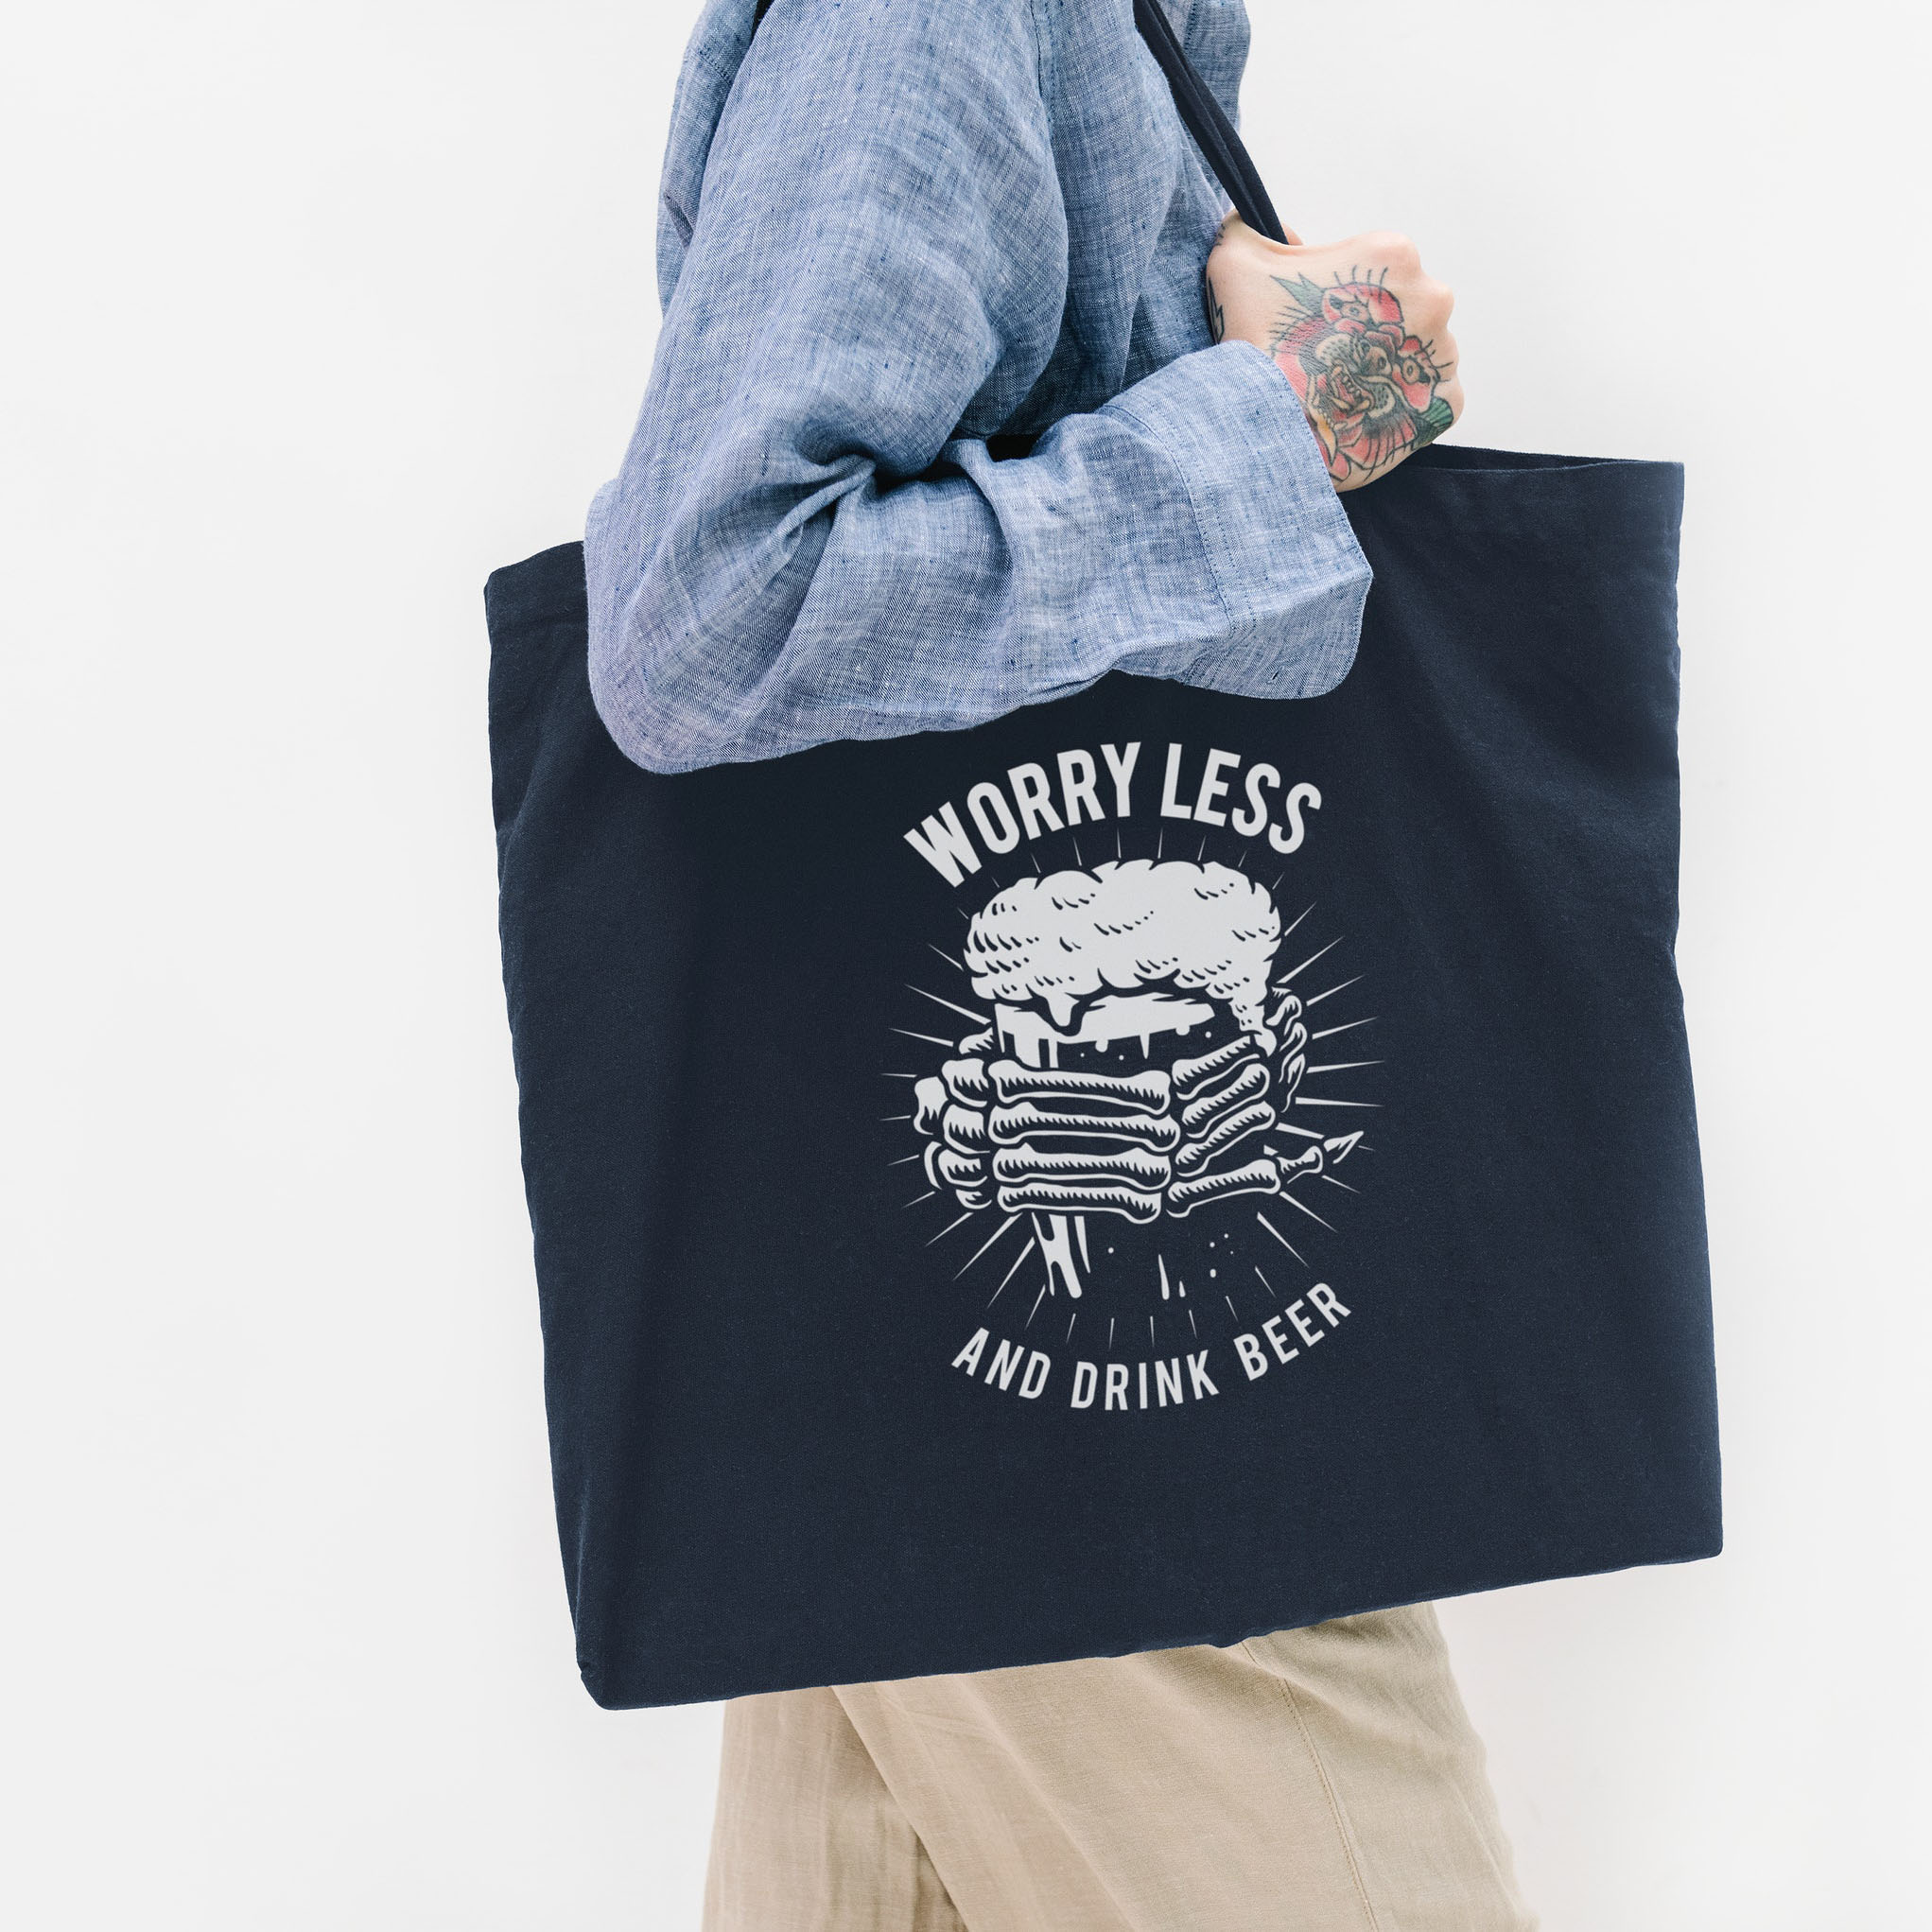 Large navy blue cotton tote bag